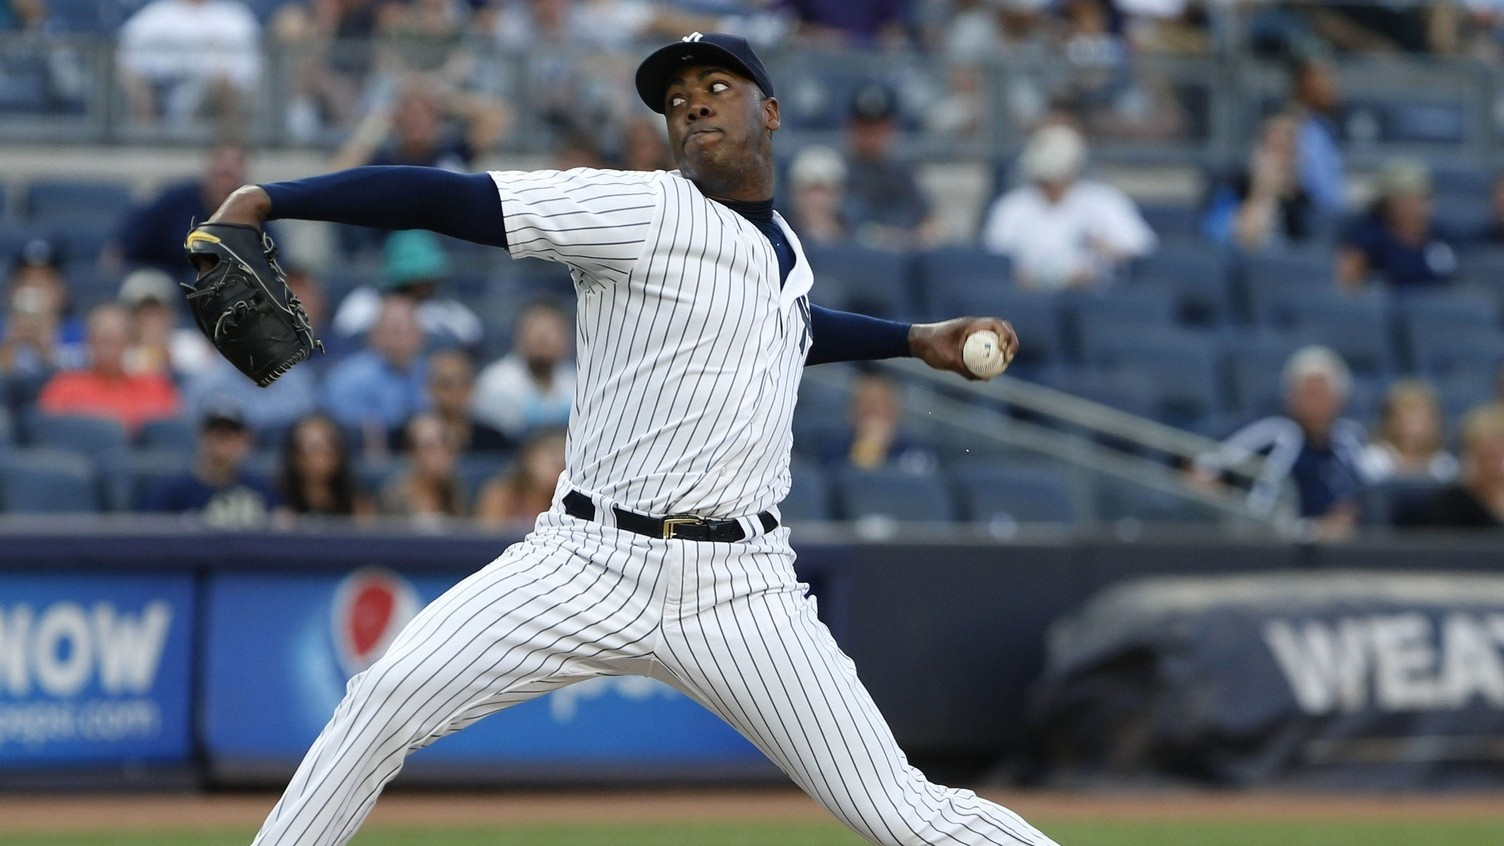 For Better or Worse, the Yankees' Gamble on Aroldis Chapman Paid Off